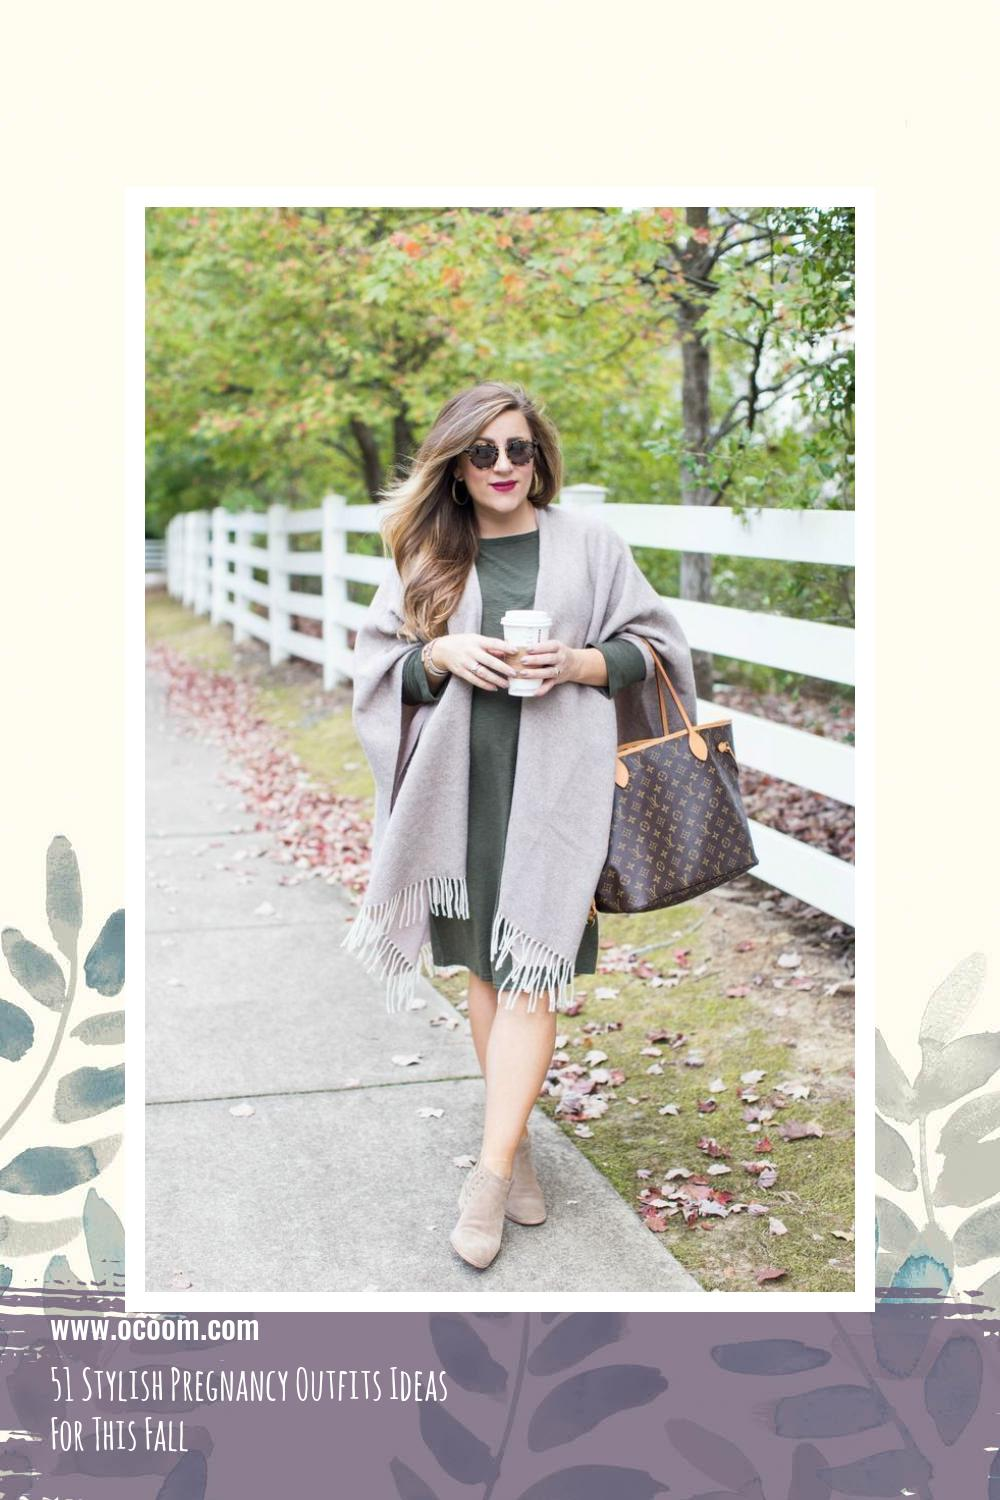 51 Stylish Pregnancy Outfits Ideas For This Fall 40